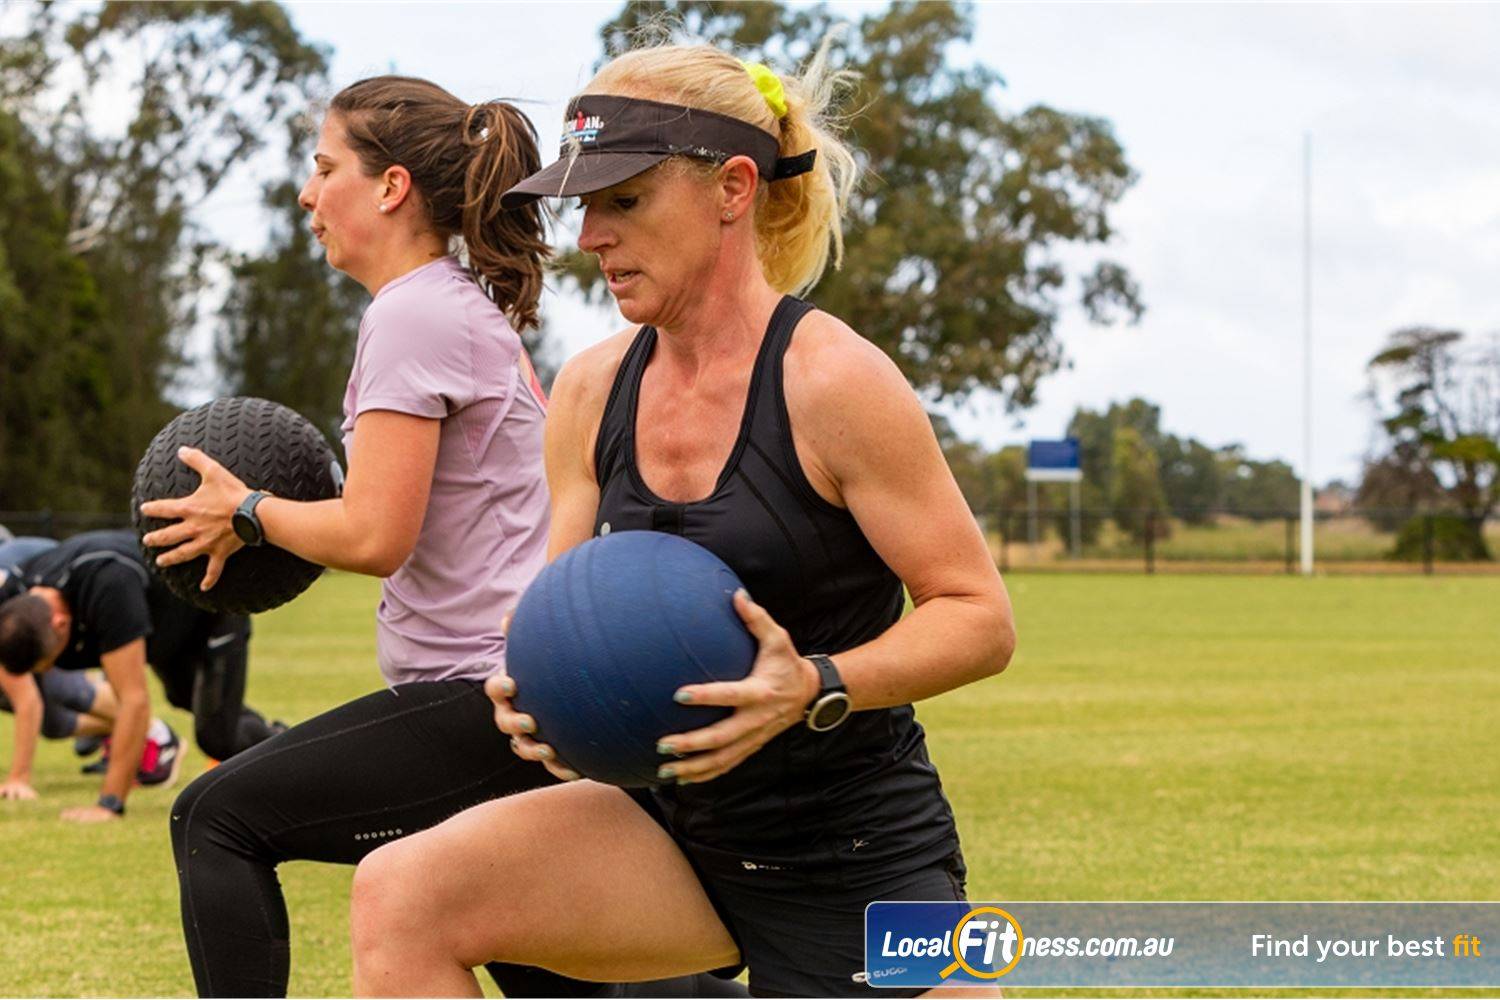 Step into Life Near Yeerongpilly HIIT, Flexibity, Boxing, Corporate, Boot camp programs and more.